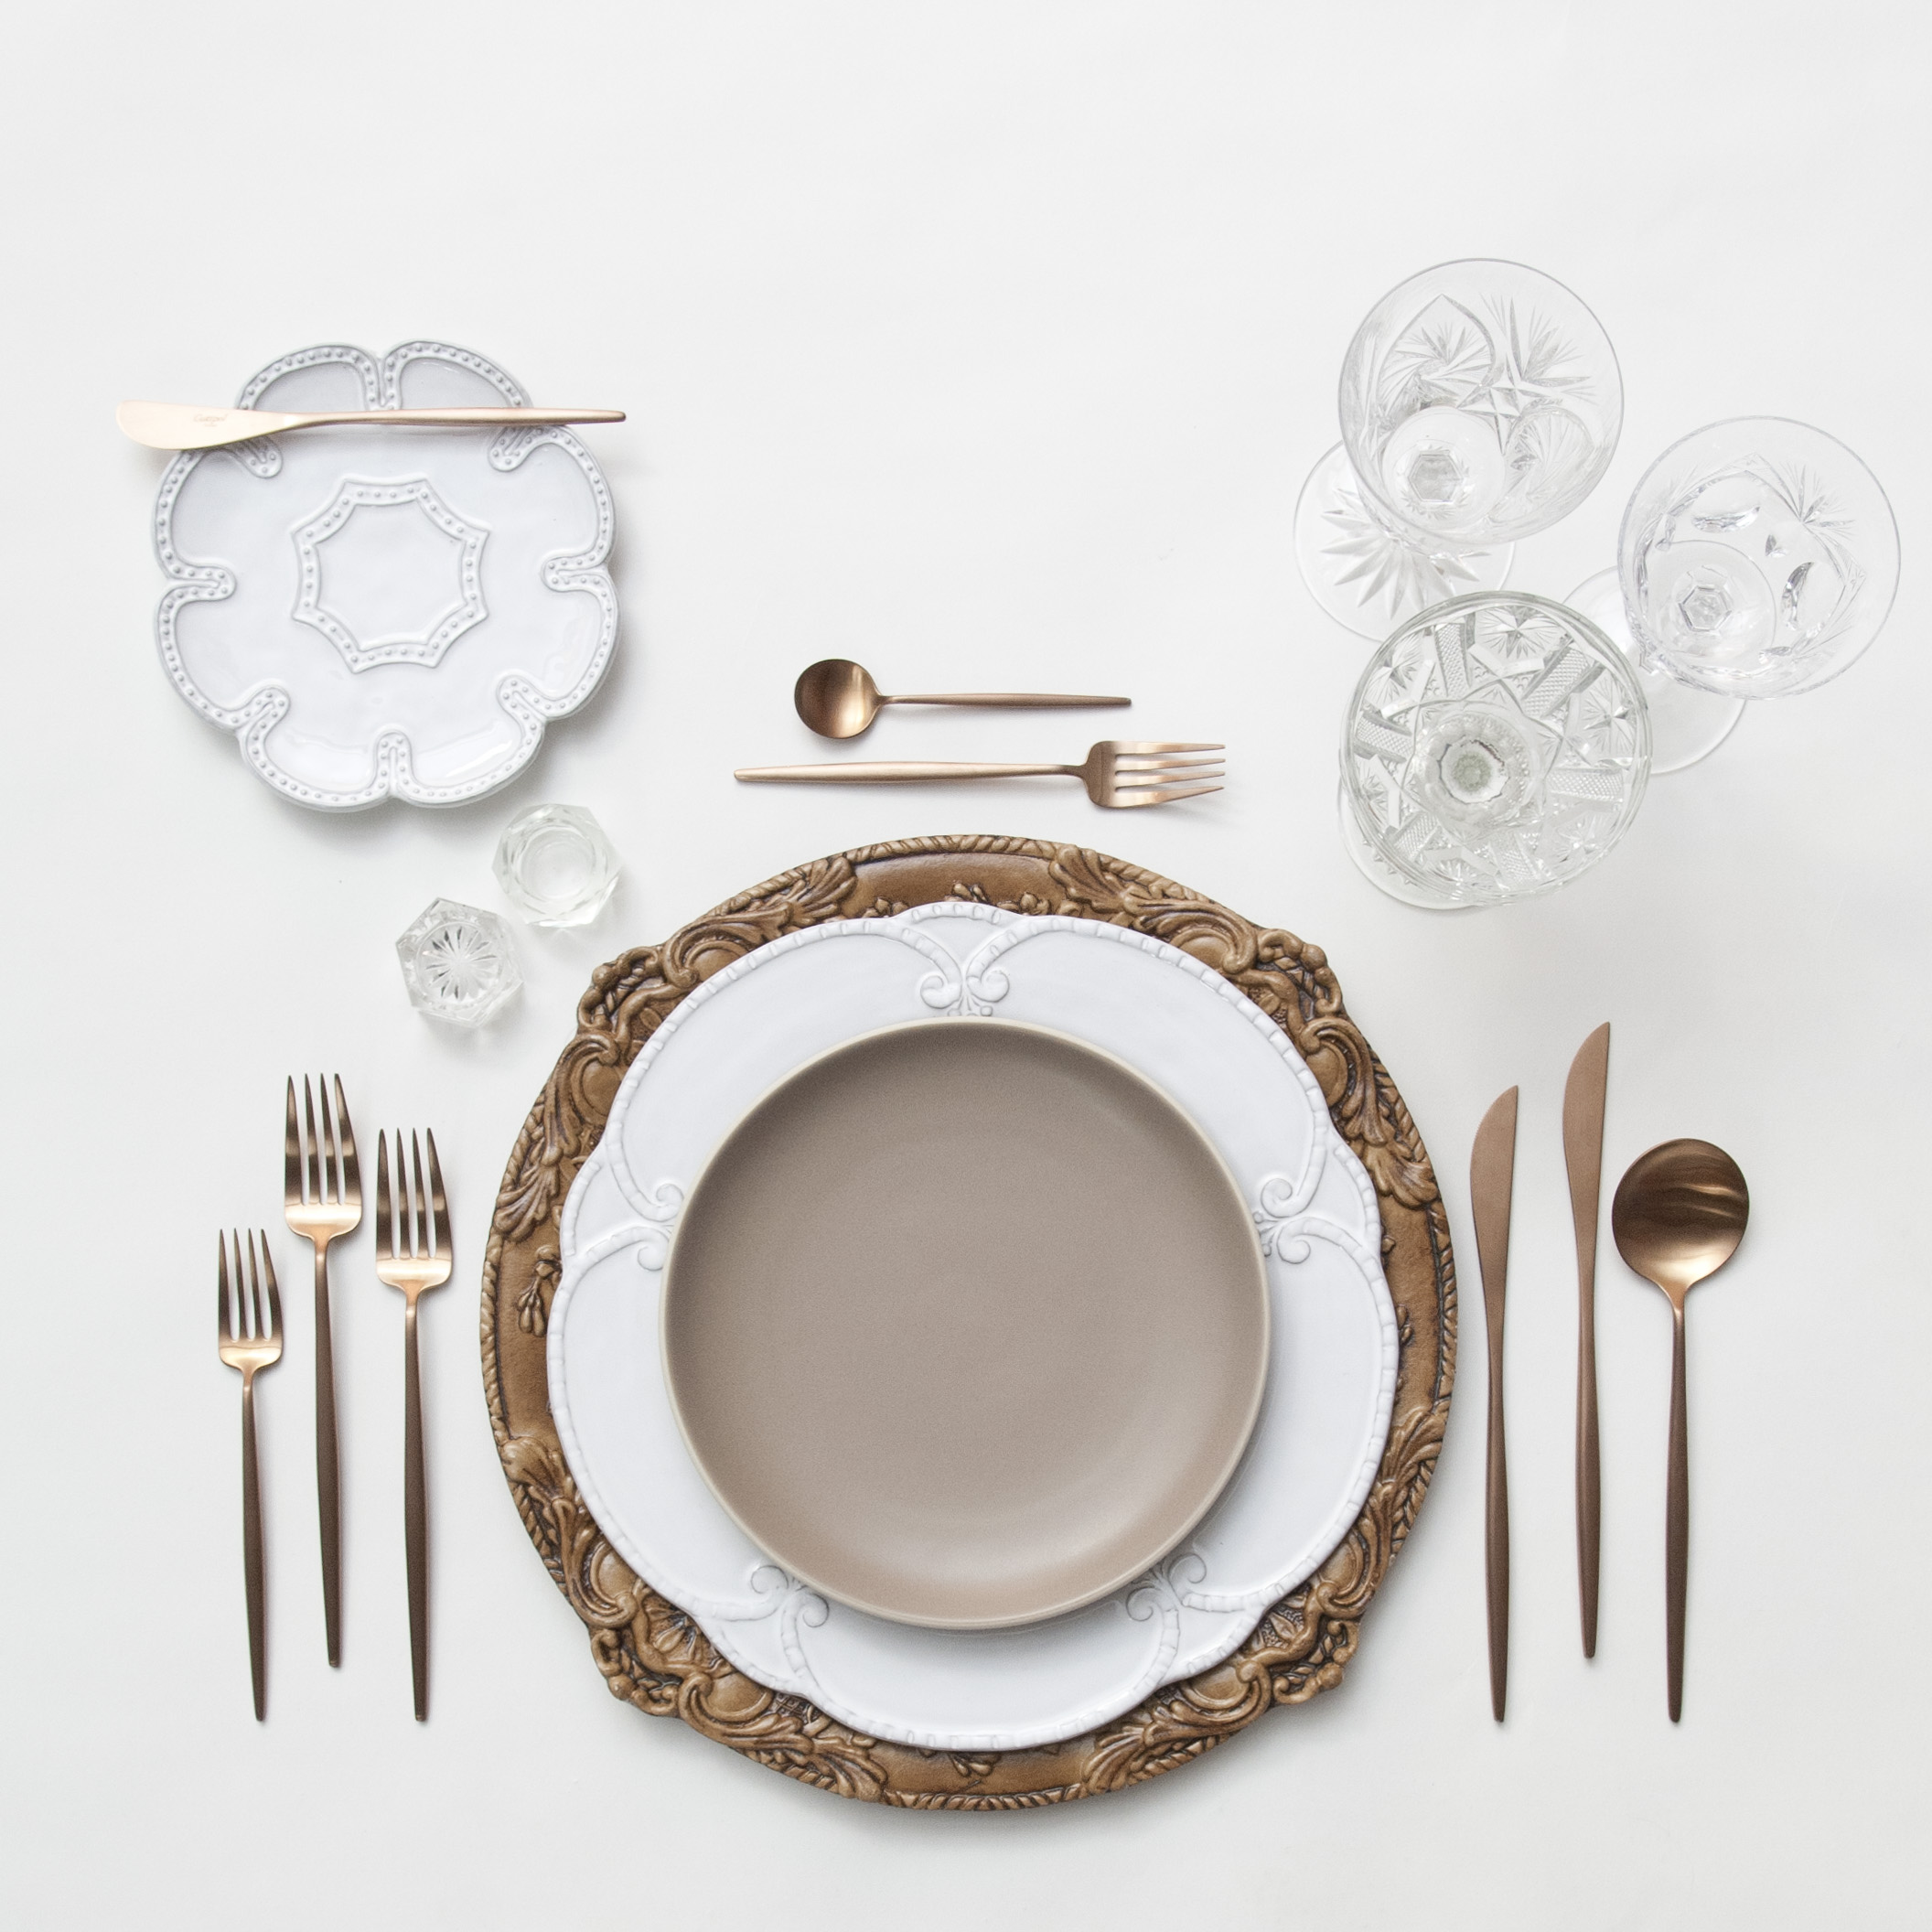 RENT: Verona Chargers in Walnut + Signature Collection Dinnerware + Heath Ceramics in French Grey + Moon Flatware in Brushed Rose Gold + Vintage Cut Crystal Goblets + Vintage Champagne Coupes + Antique Crystal Salt Cellars  SHOP:Verona Chargers in Walnut +Moon Flatware in Brushed Rose Gold